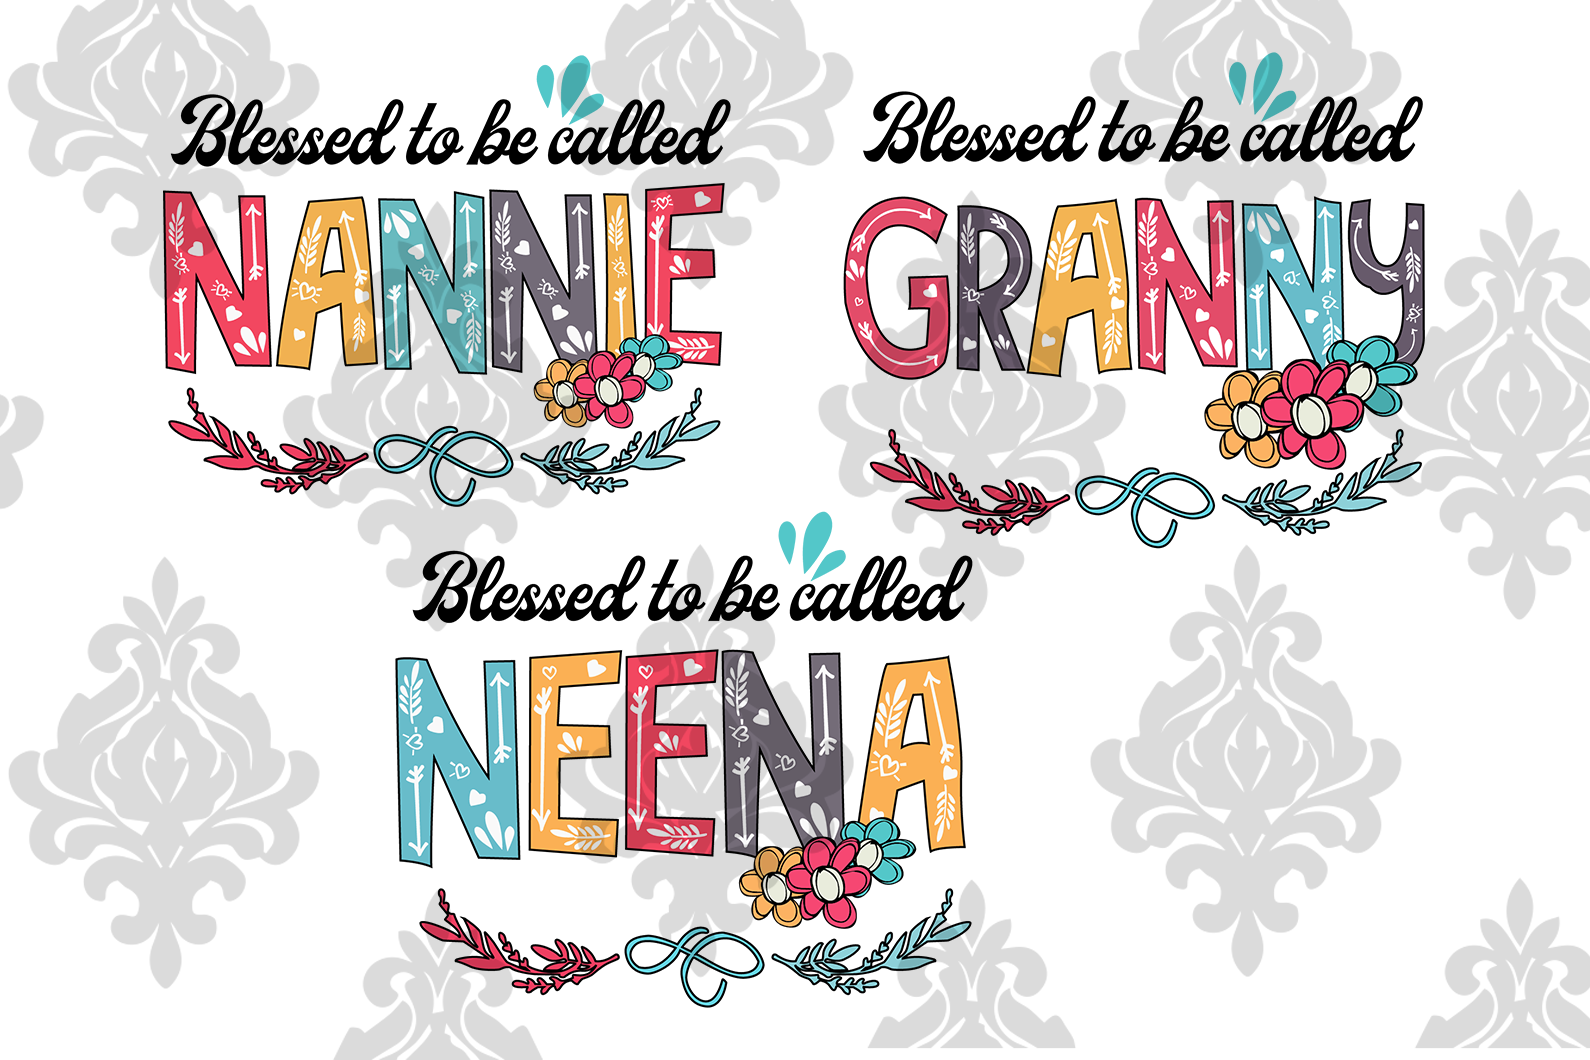 Blessed to be called nannie svg,granny svg,neena svg,mother's day svg,gigi svg,grandma svg,blessed gigi svg,mawmaw svg,gift for mom,gift for mother,svg cut files, svg clipart, silhouette svg, svg files, decal and vinyl,